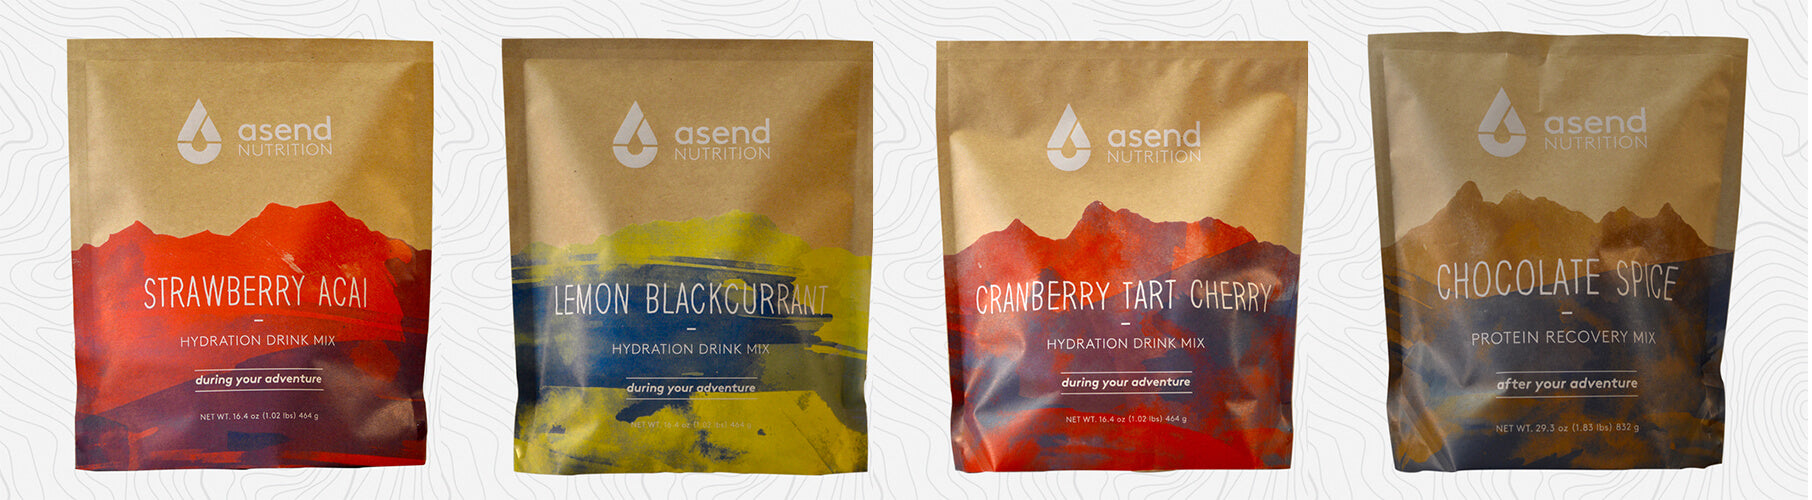 Asend Nutrition - Contender Bicycles